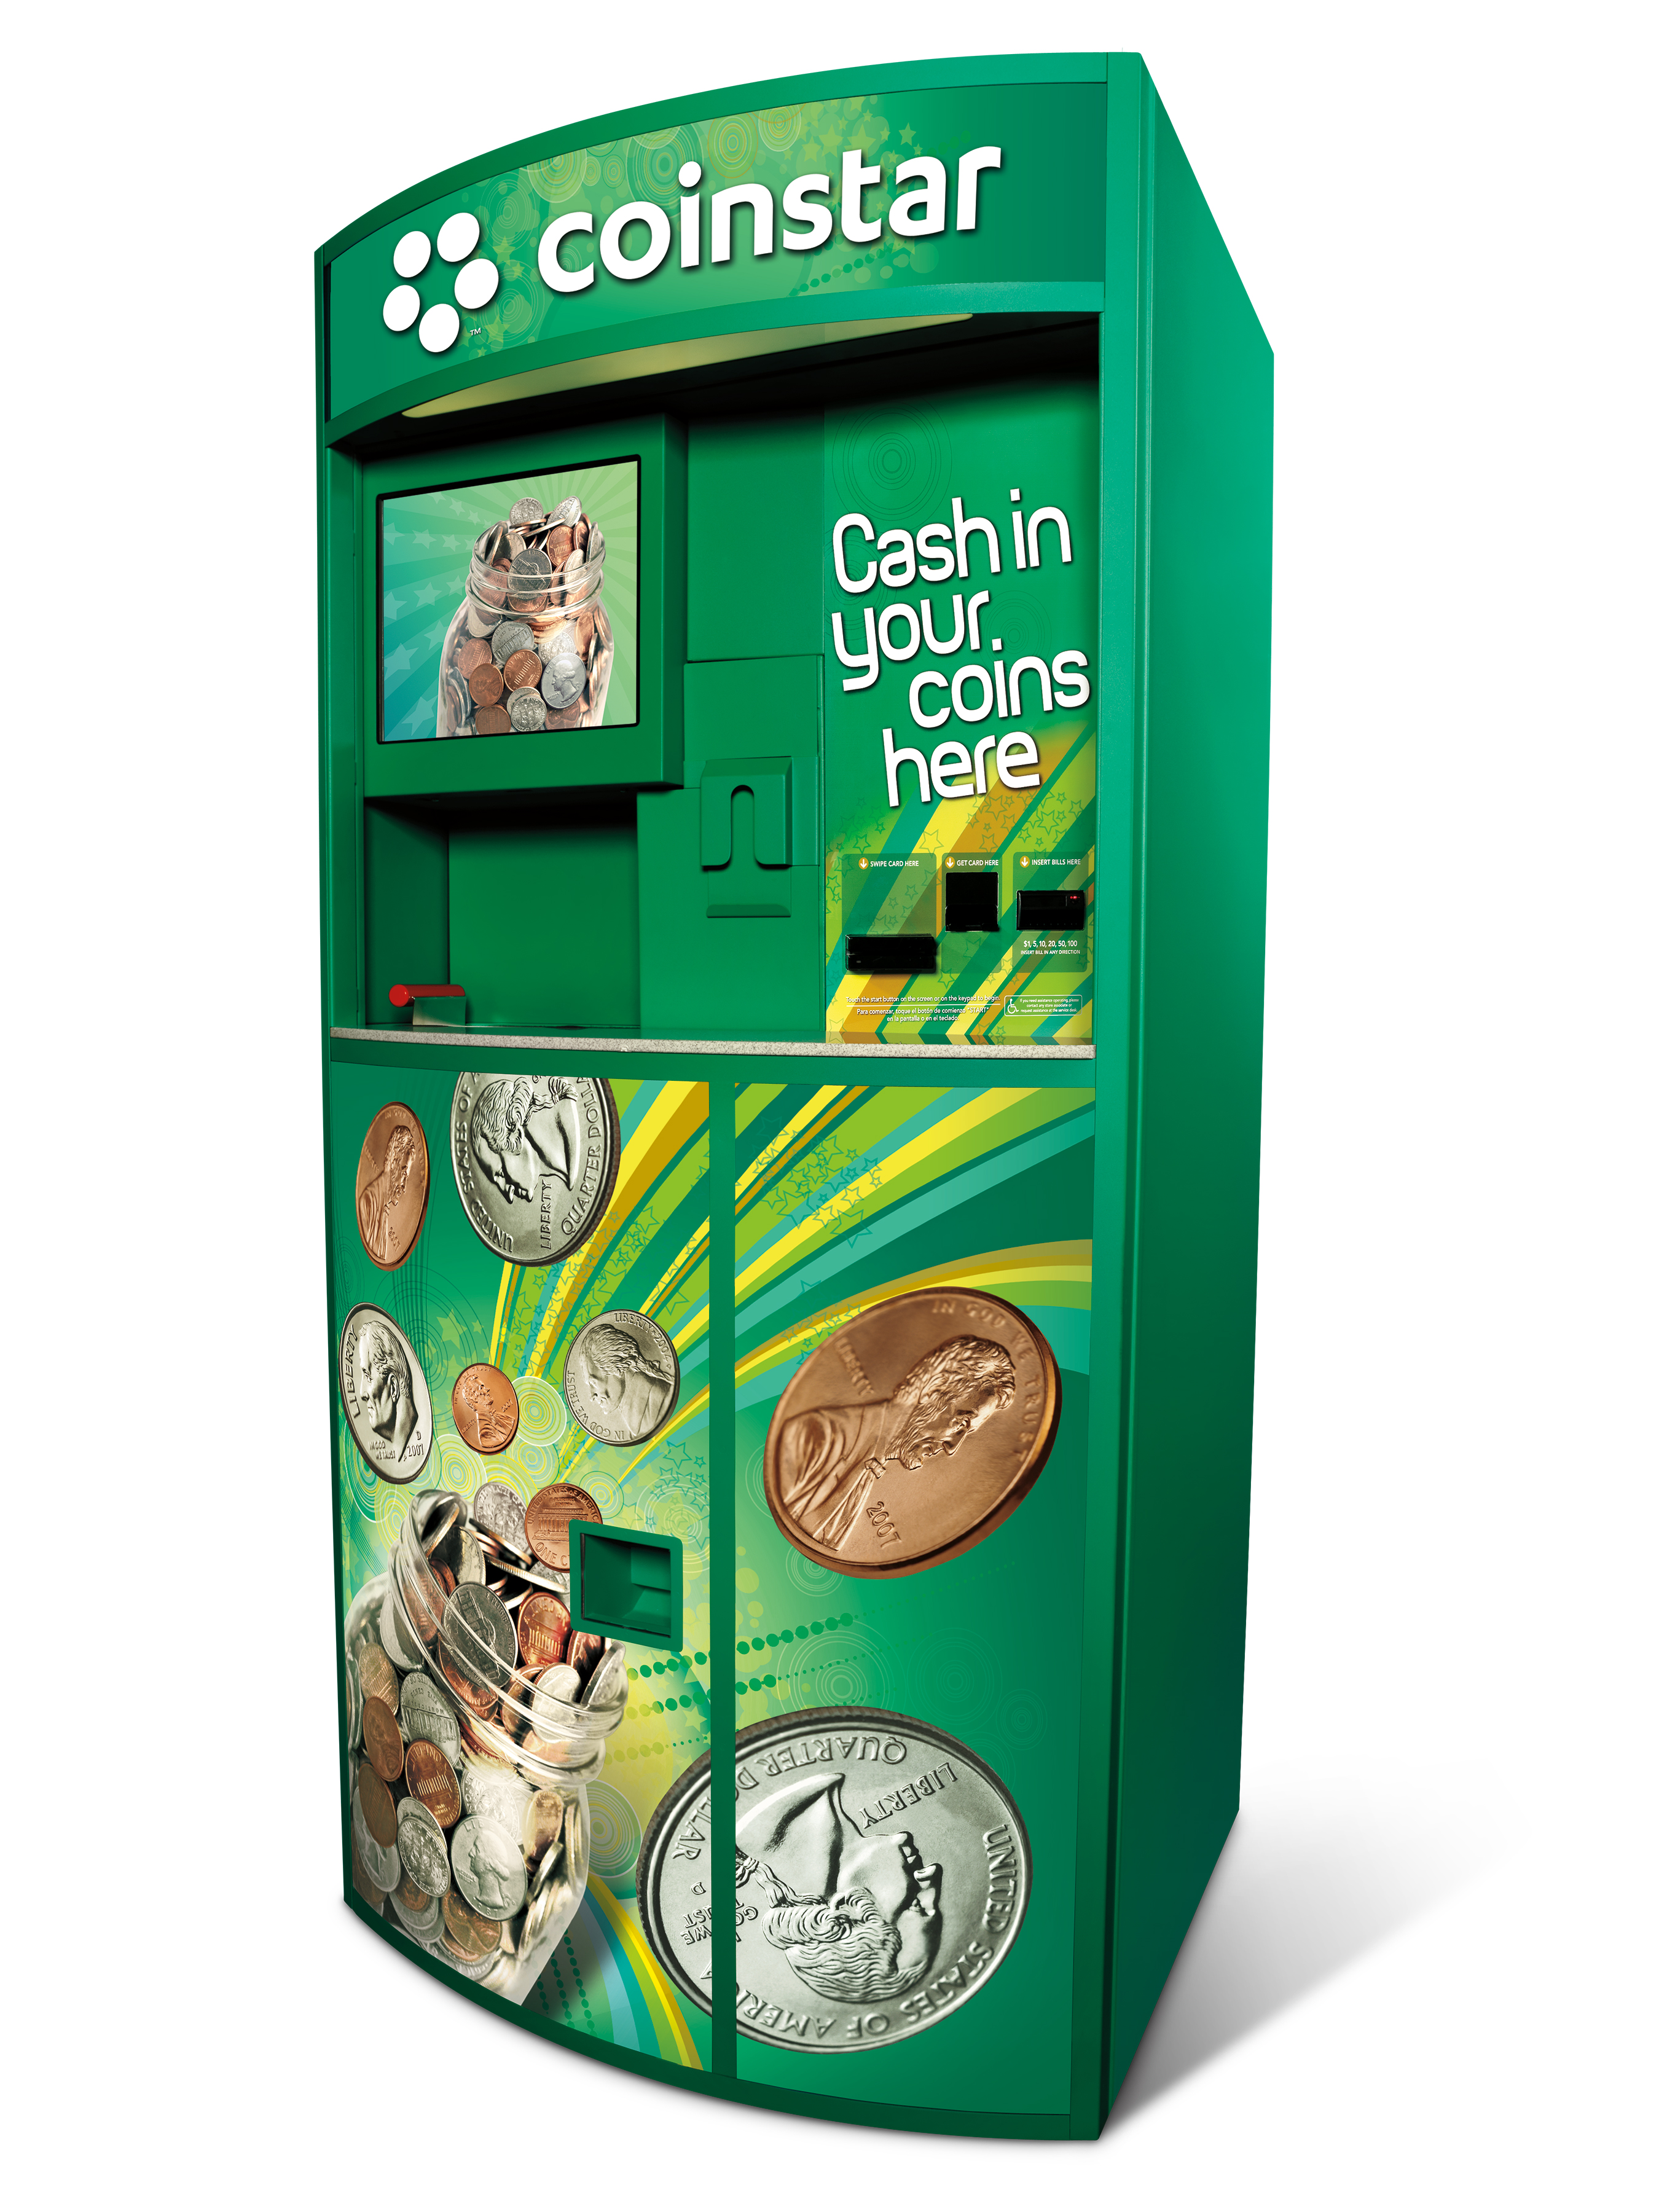 where can i find a coin counting machine